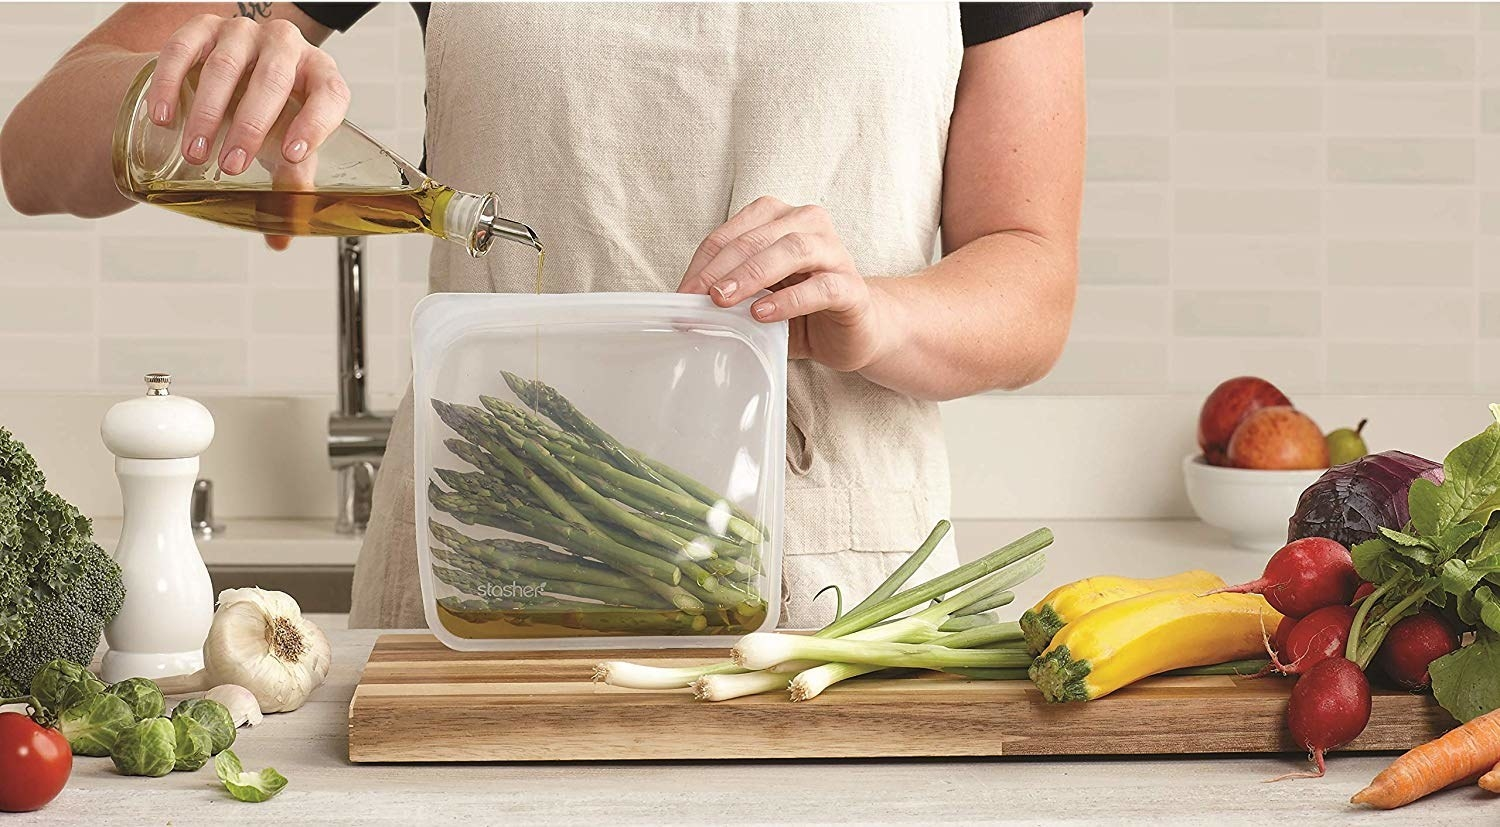 a person pouring olive oil into asparagus that are in the reusable bag